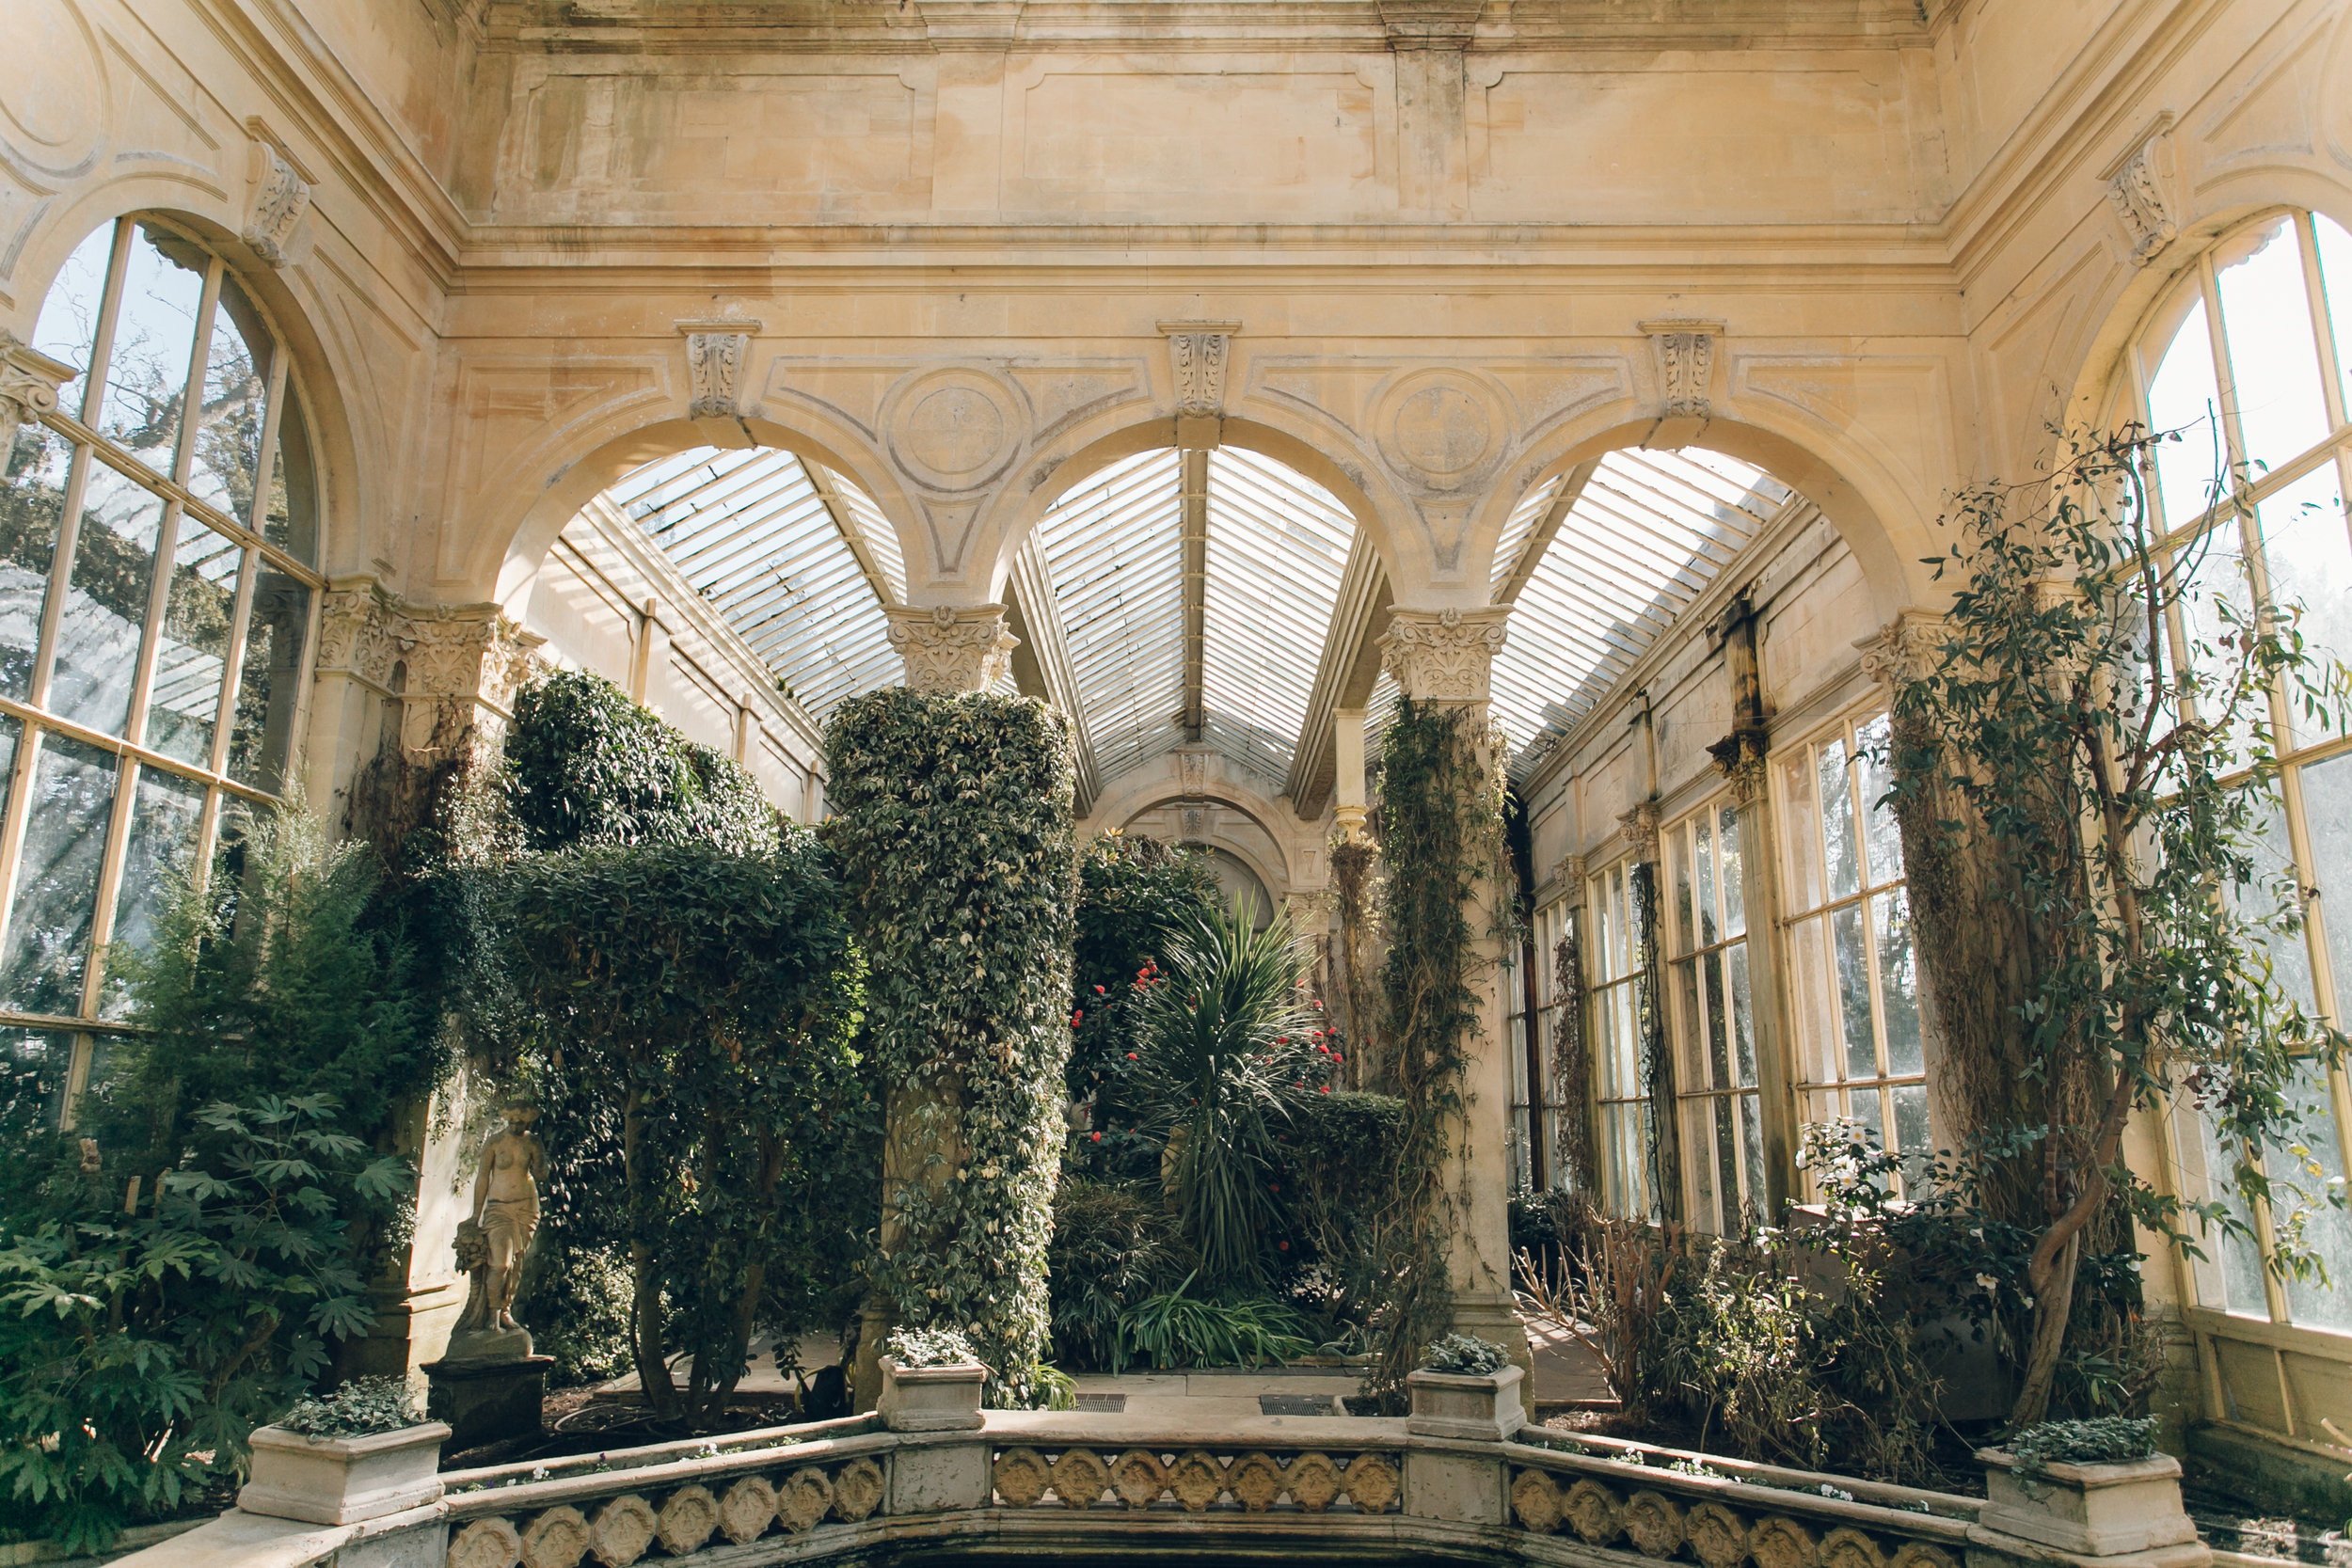 Castle Ashby orangery, photographed by Haarkon